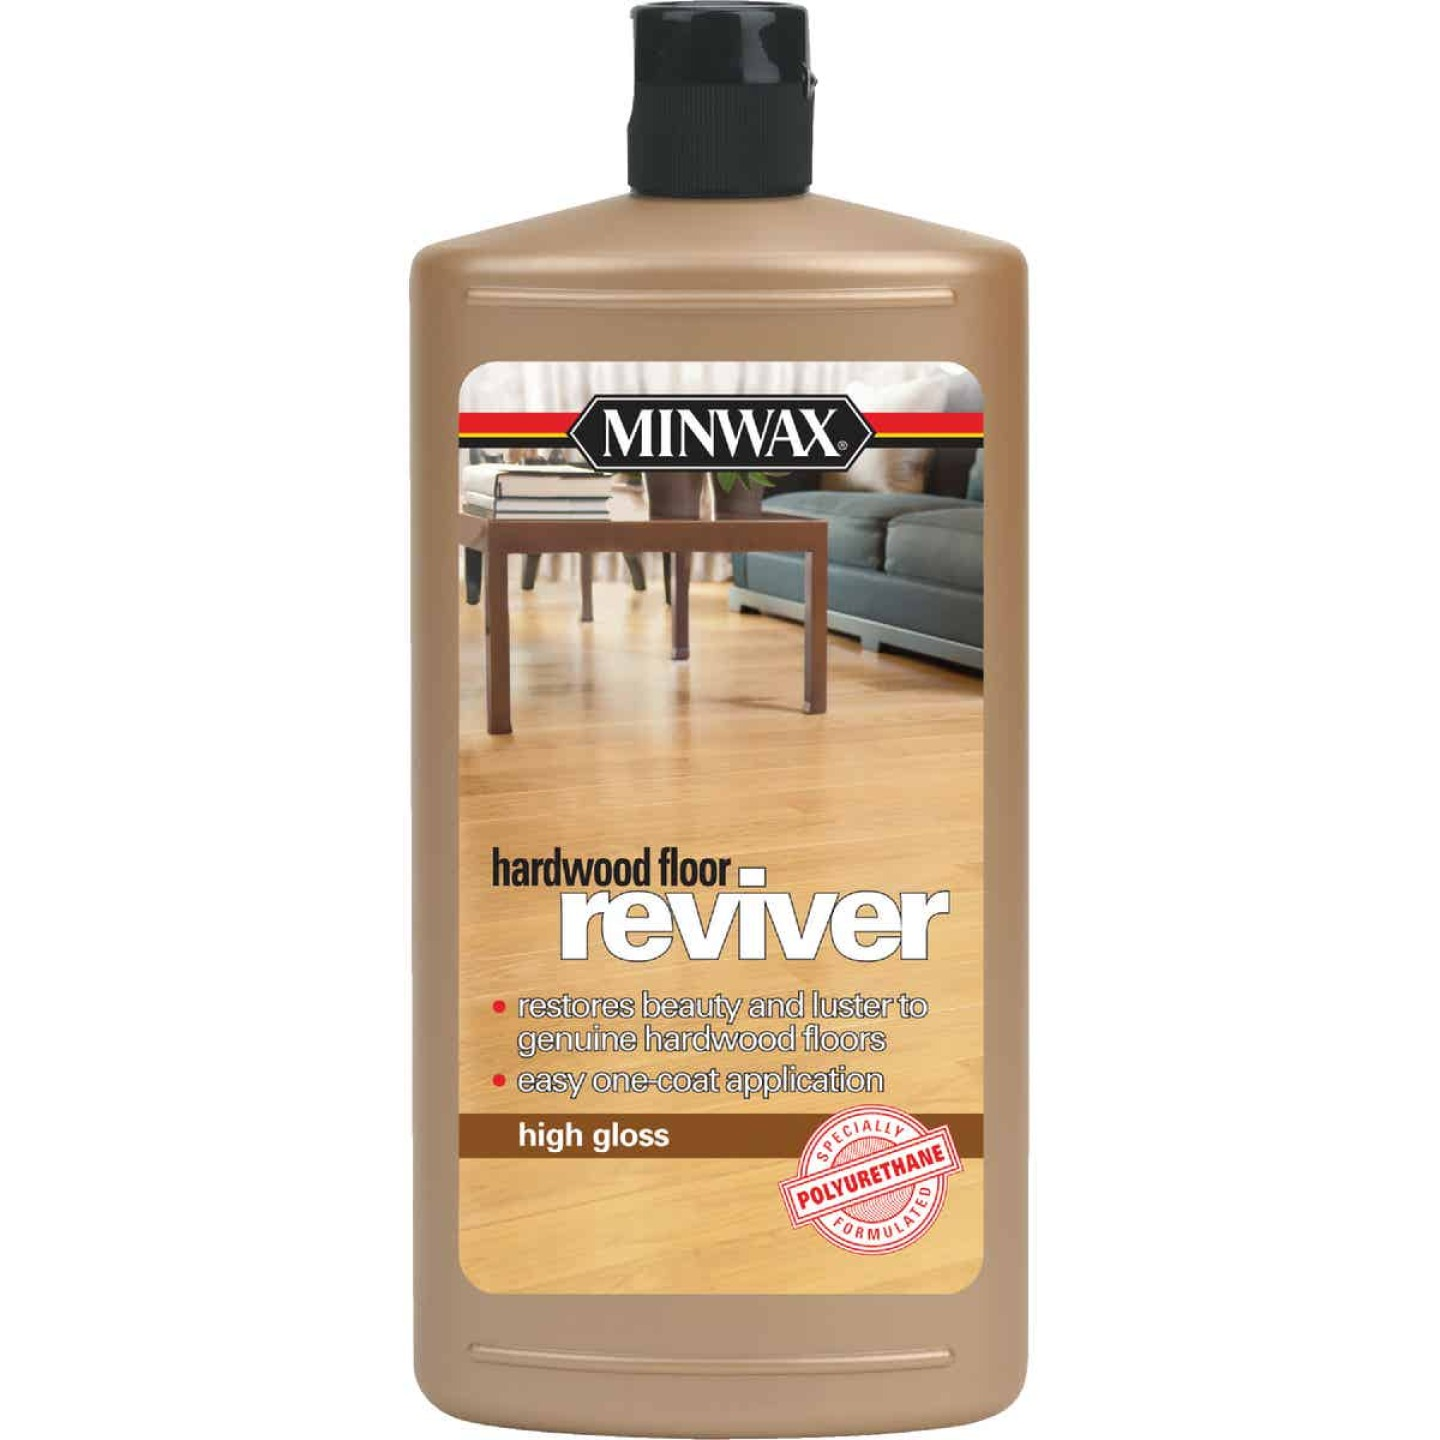 Minwax 32 Oz. High Gloss Hardwood Floor Reviver Image 1